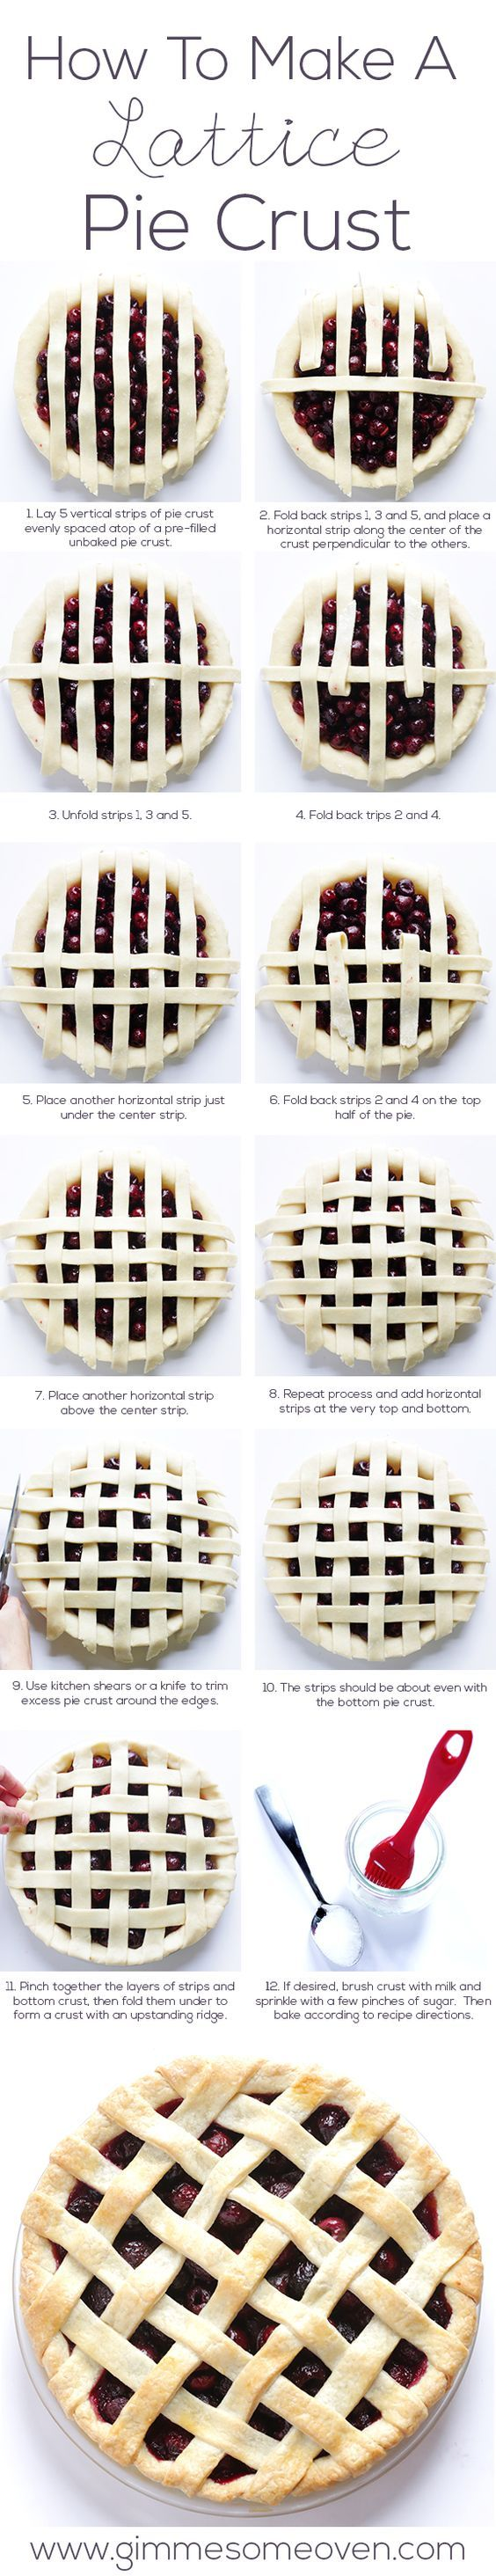 How To Make A Lattice Pie Crust.  Try this classic design with Mr. Wittle's assorted pie fillings in Apple Blueberry and Strawberry today. Available @CentralMarket @ManyKitchens @RoyPopeGrocery